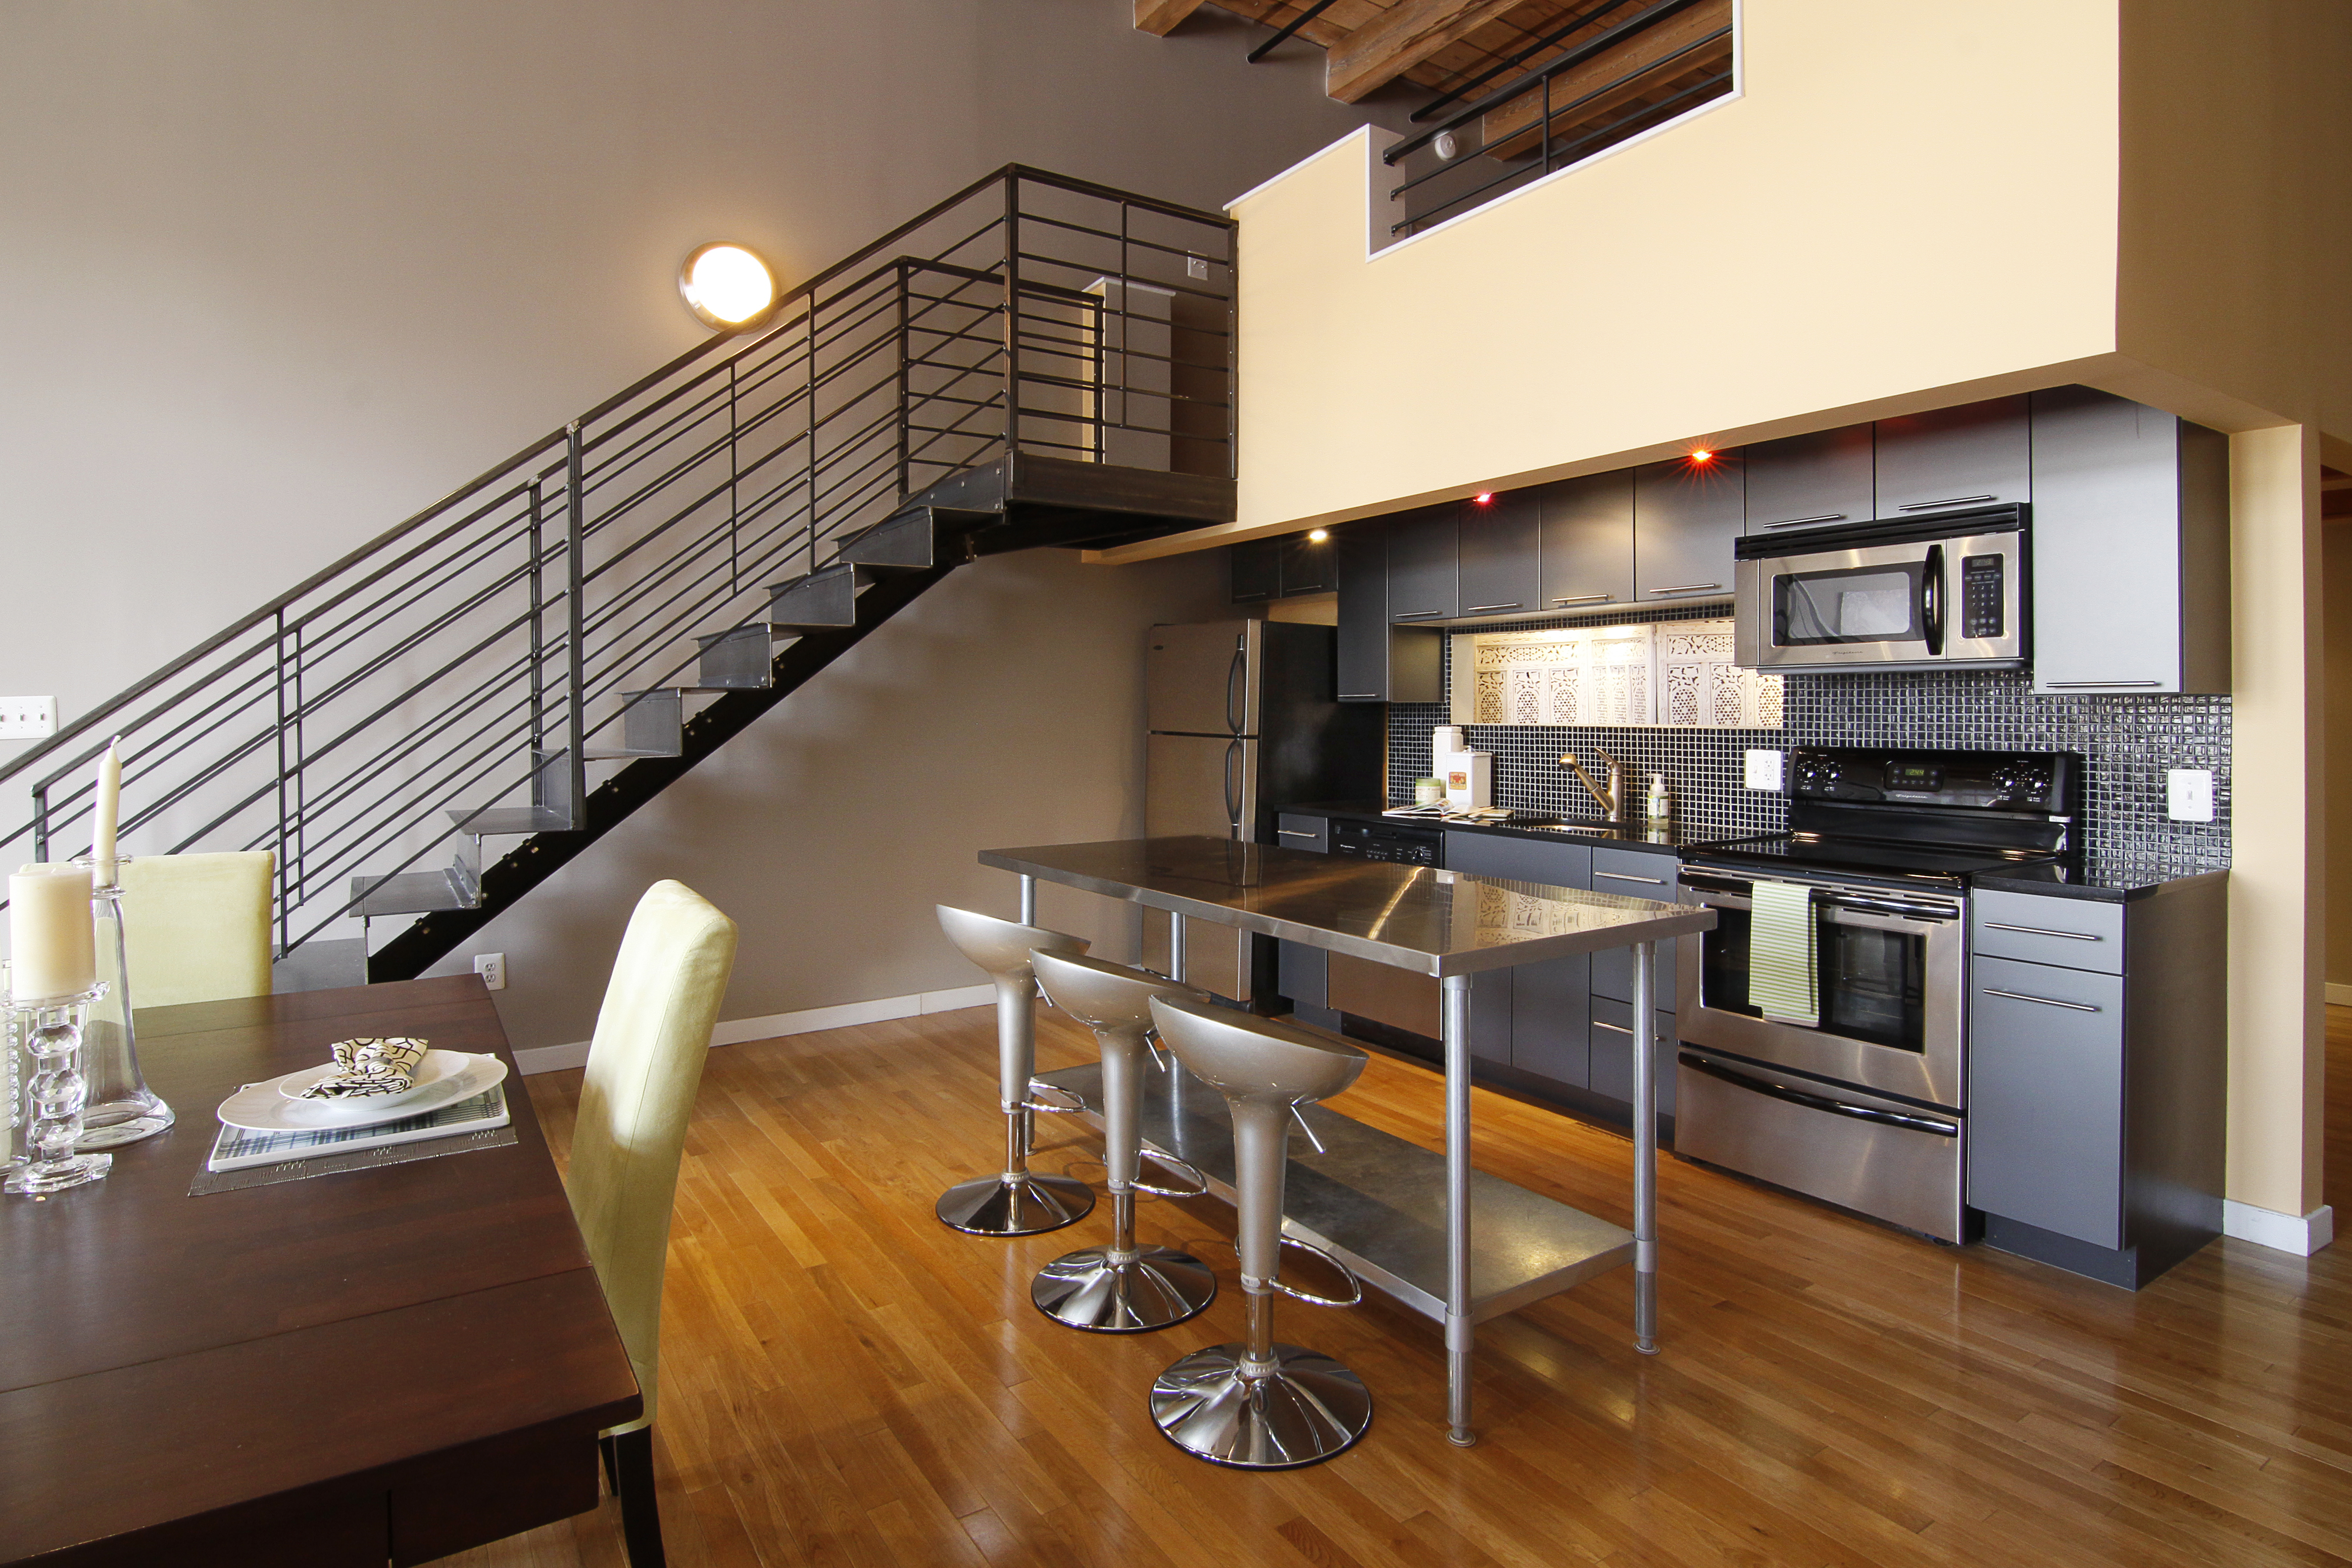 Cool Modern Loft In Minneapolis Sexton Lofts For Sale